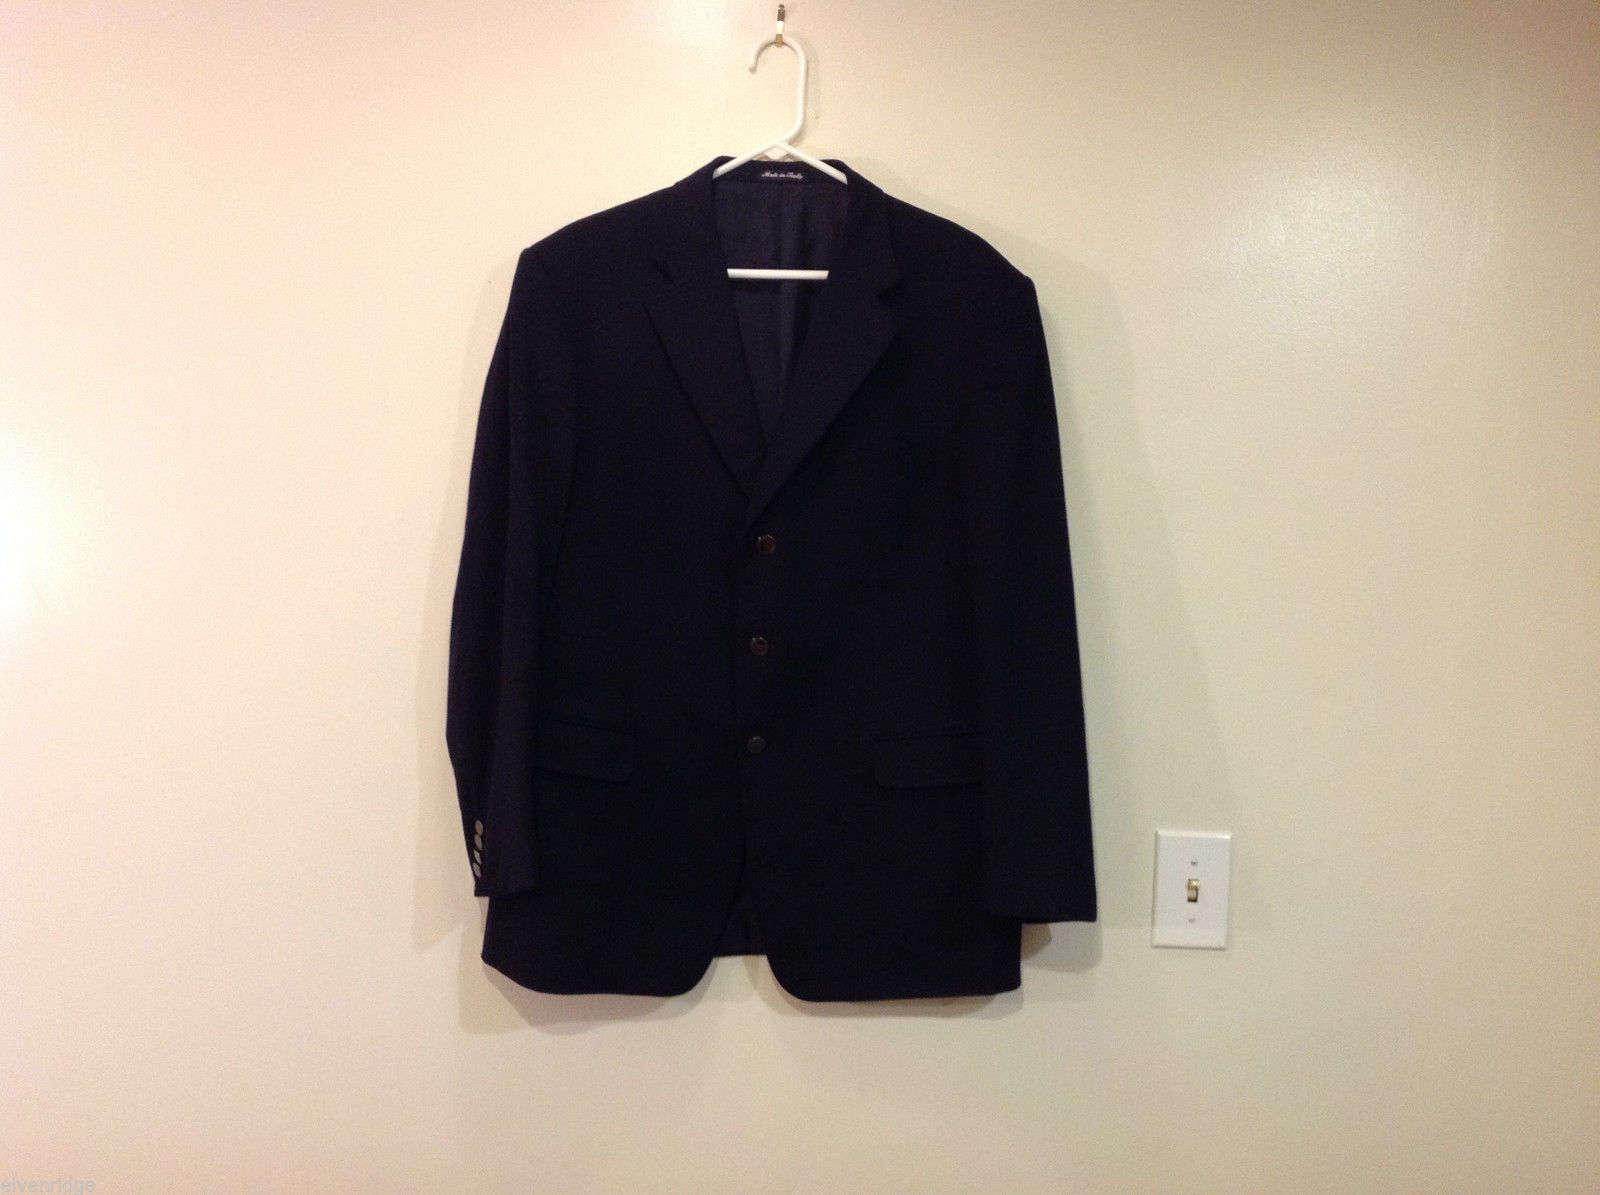 Trussardi Three Buttons Black 100% Wool Blazer Suit Jacket, Size EUR.52R